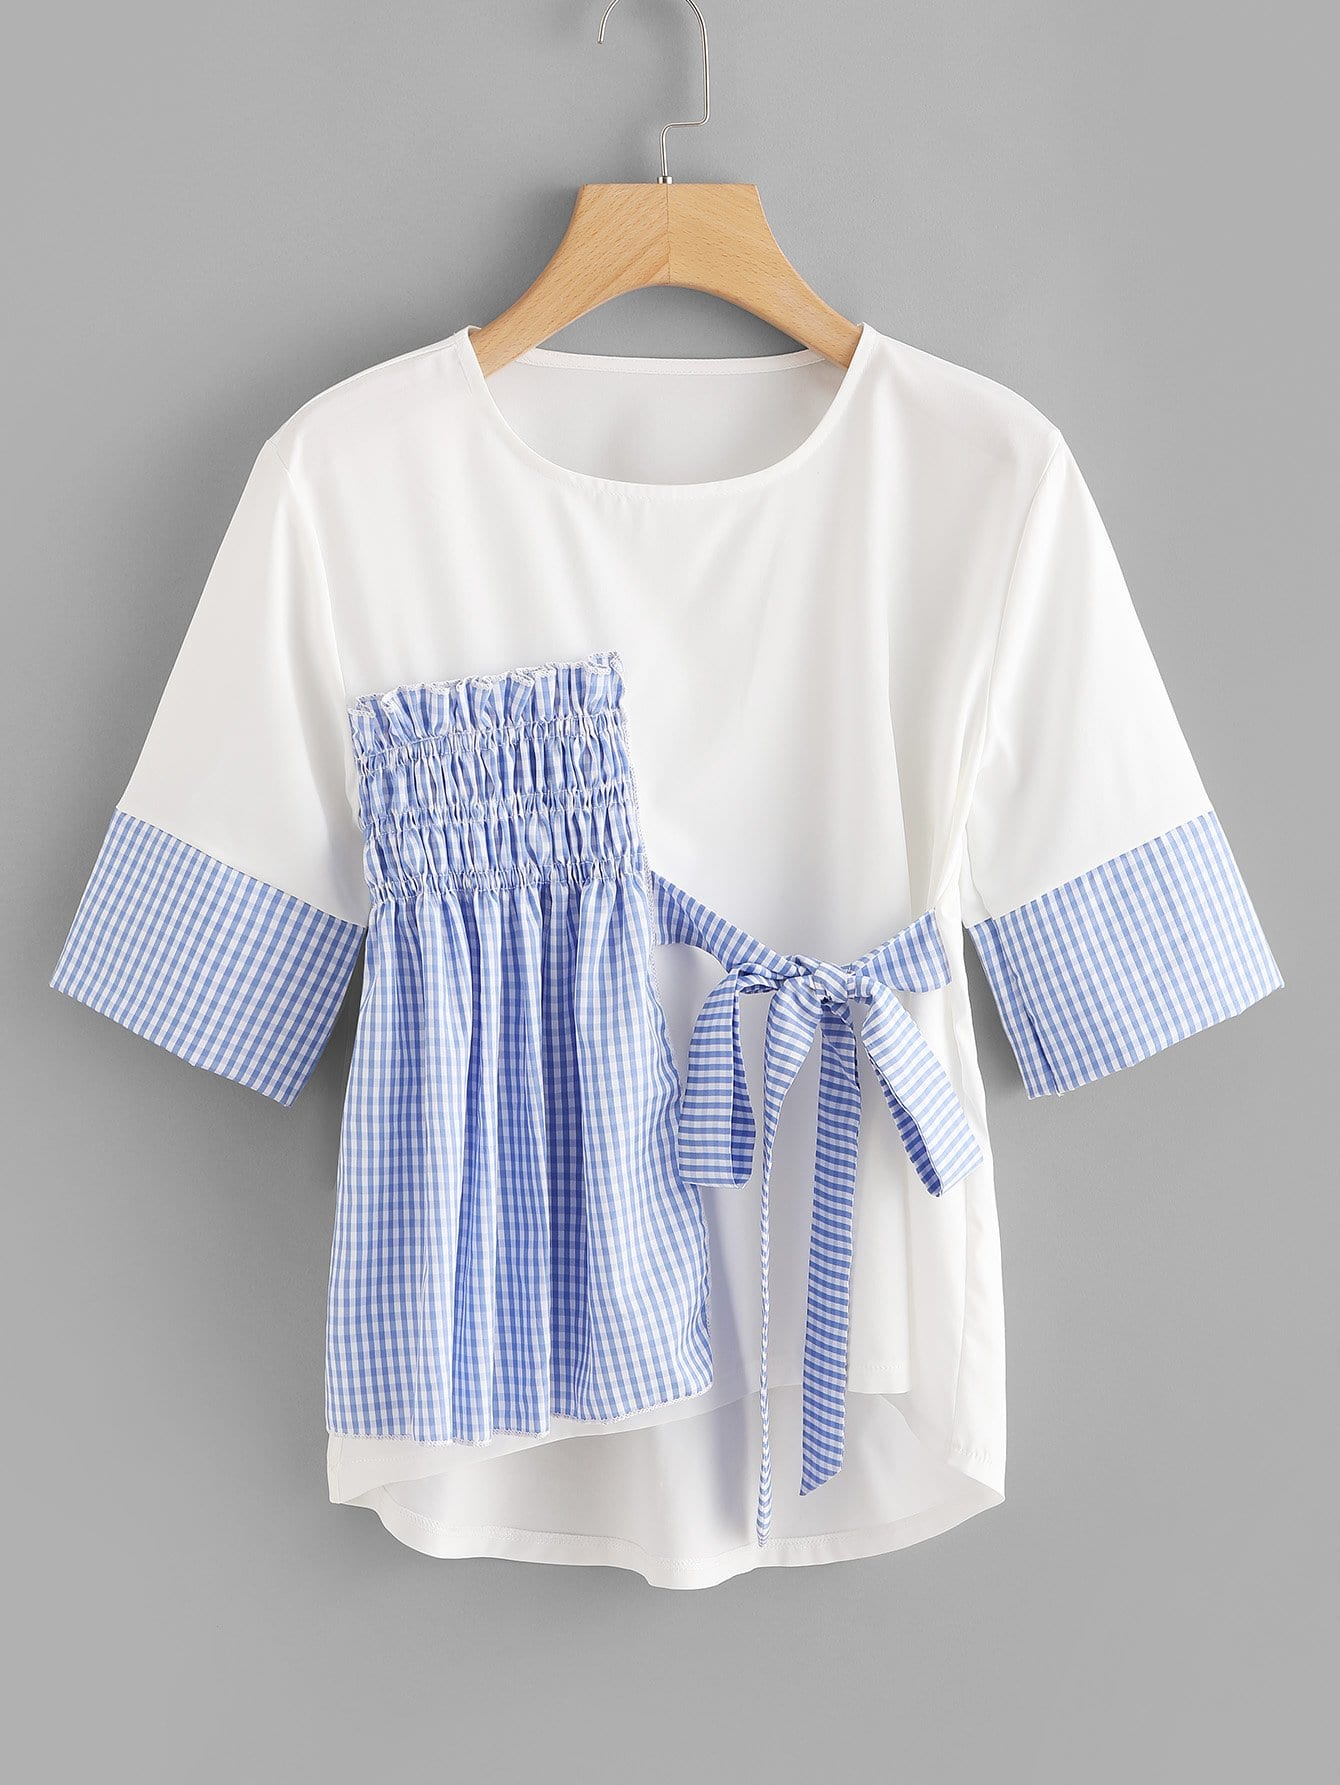 Pleated Detail Knot Front Tee knot front hollow detail blouse